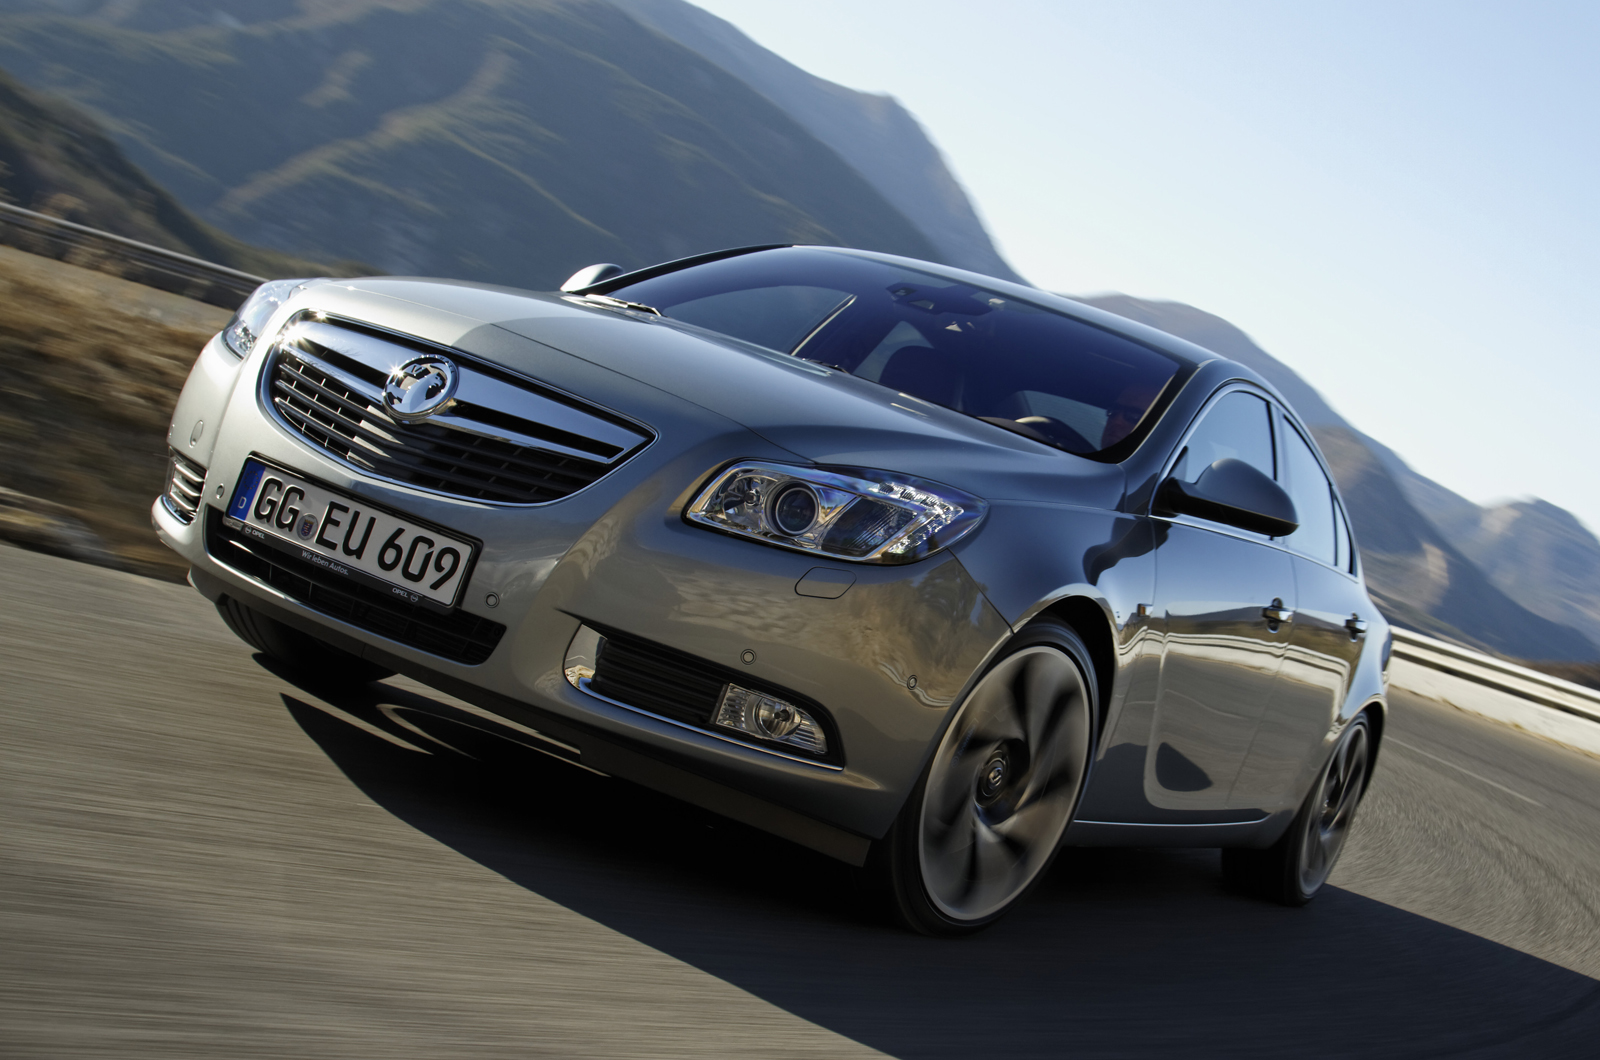 vauxhall insignia 2 0 cdti biturbo 4x4 autocar. Black Bedroom Furniture Sets. Home Design Ideas